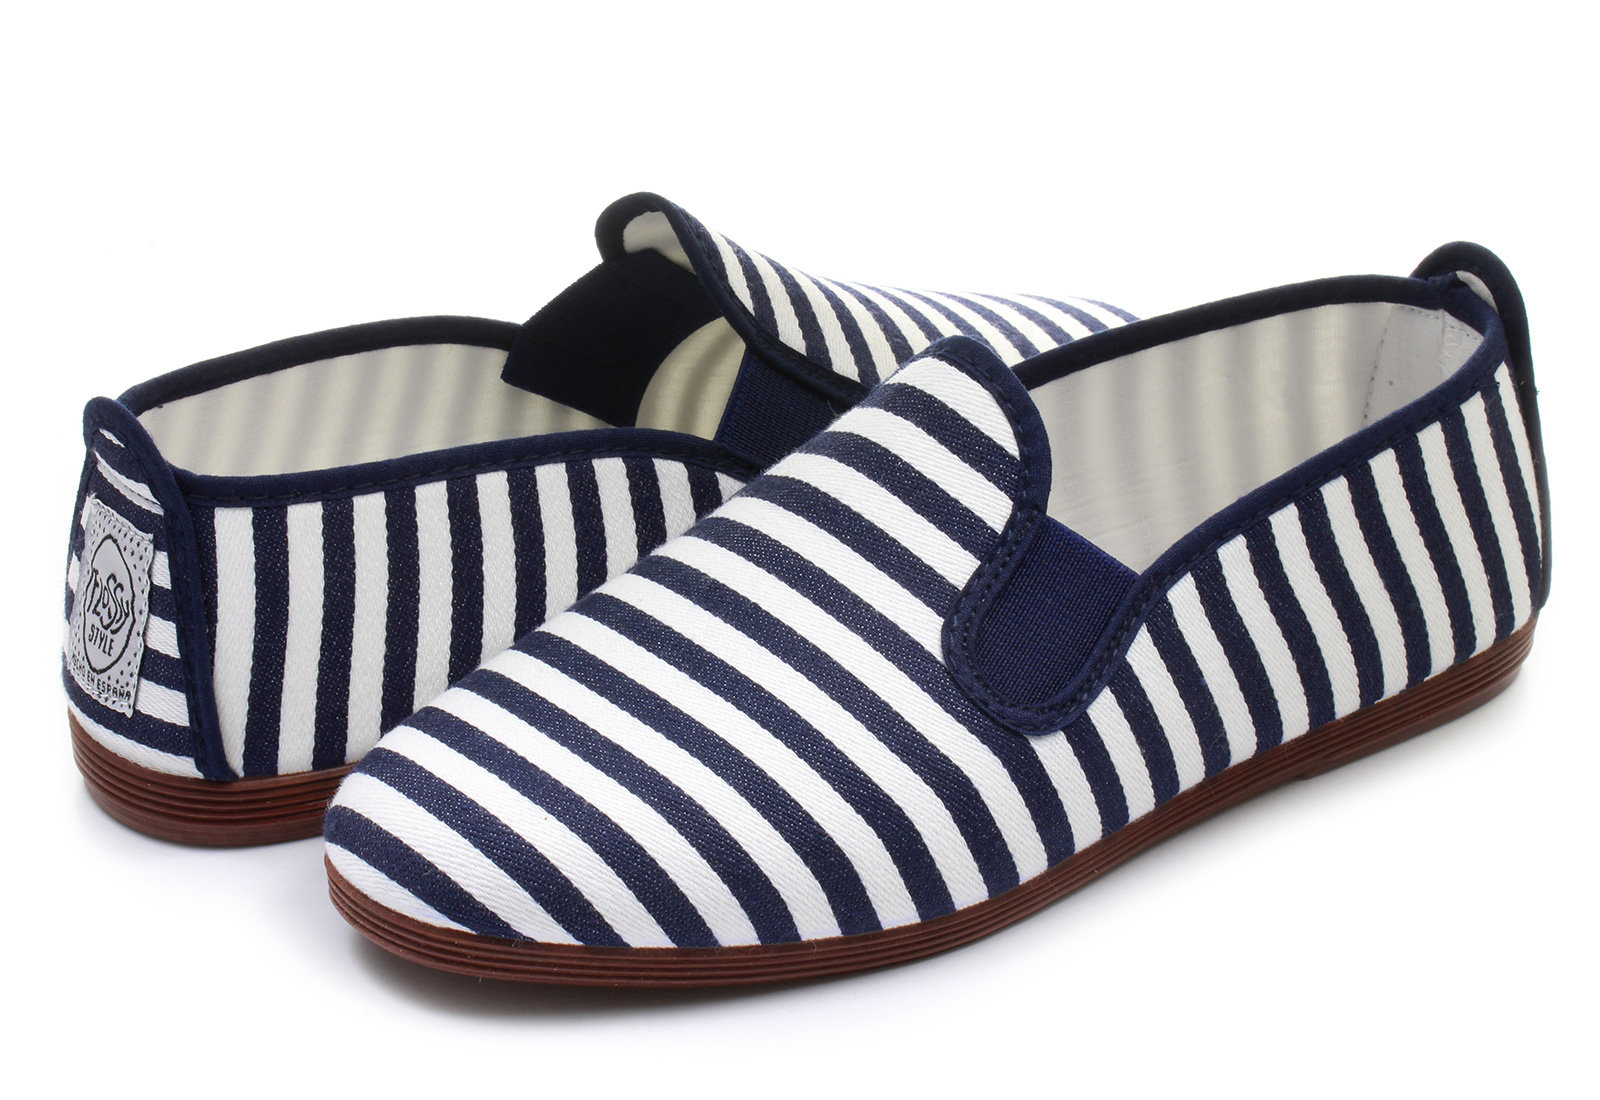 aeba6ef8101976 Flossy Shoes - Corella - WOM-COR-NVY - Online shop for sneakers ...